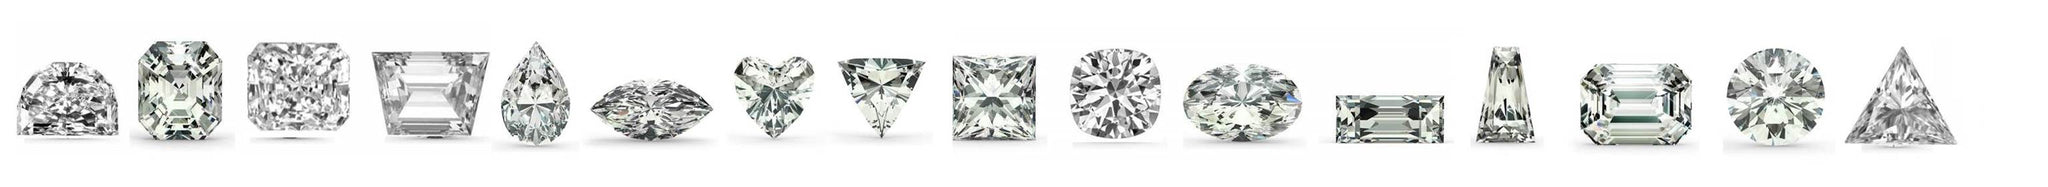 highest quality 5A AAAAA cubic zirconia gemstones